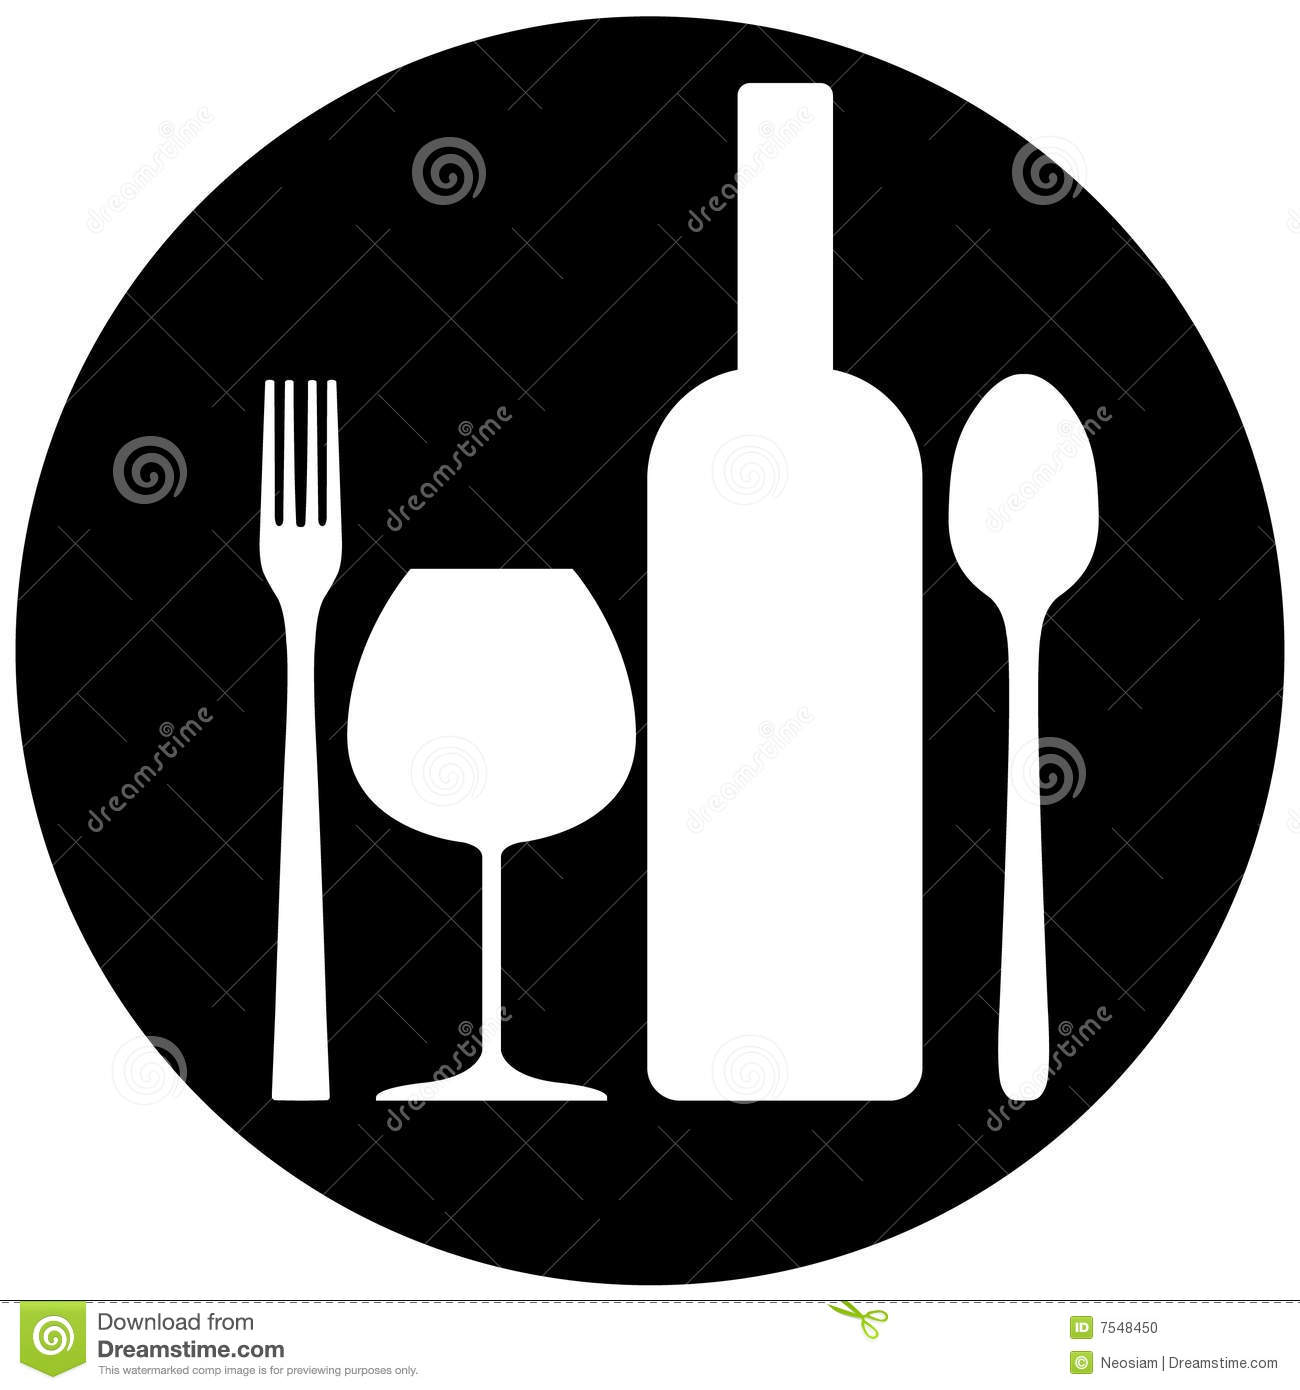 drink sign alimento segno bevanda dell della nourriture signe boissons graphic vector